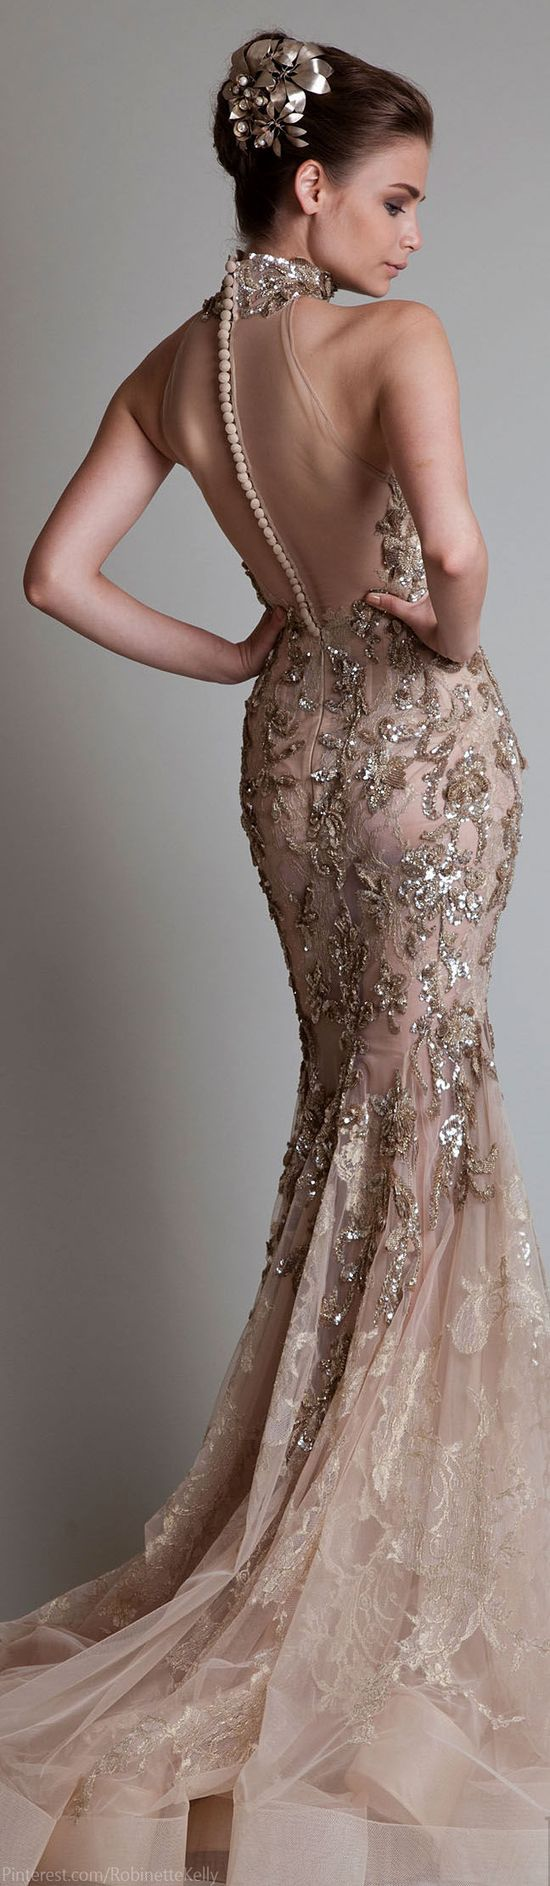 Lovely evening gown ~Latest Luxurious Women's Fashion - Haute Couture - dresses, jackets. bags, jewellery, shoes etc